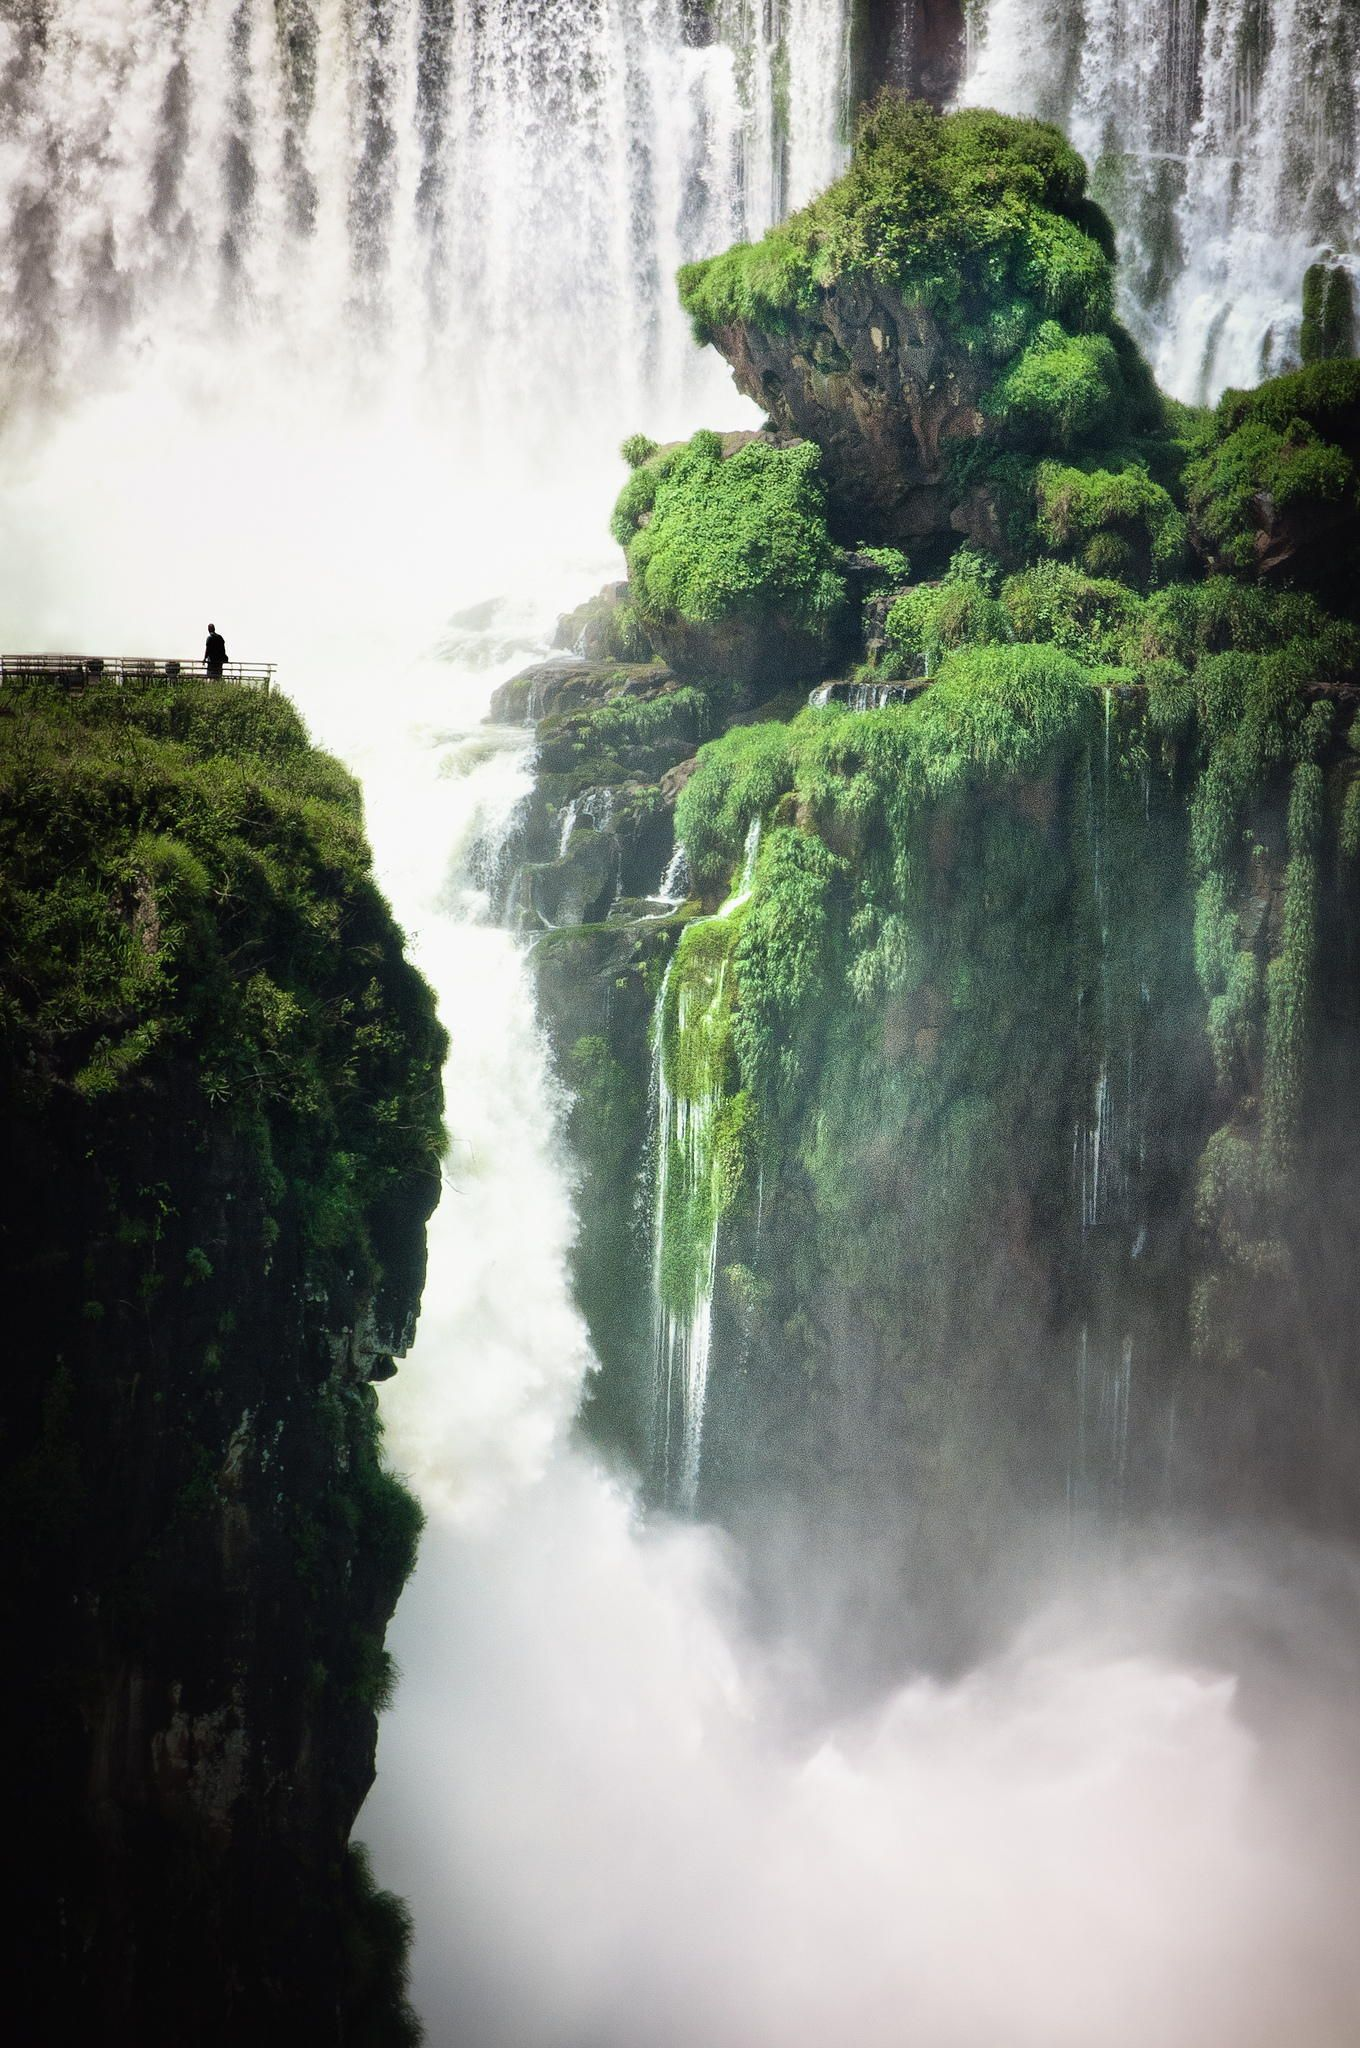 Iguazu Falls Iguassu Or Iguacu Are The Biggest Waterfalls In World Consist Of 275 Separate And Is Actually Bigger Than Niagara